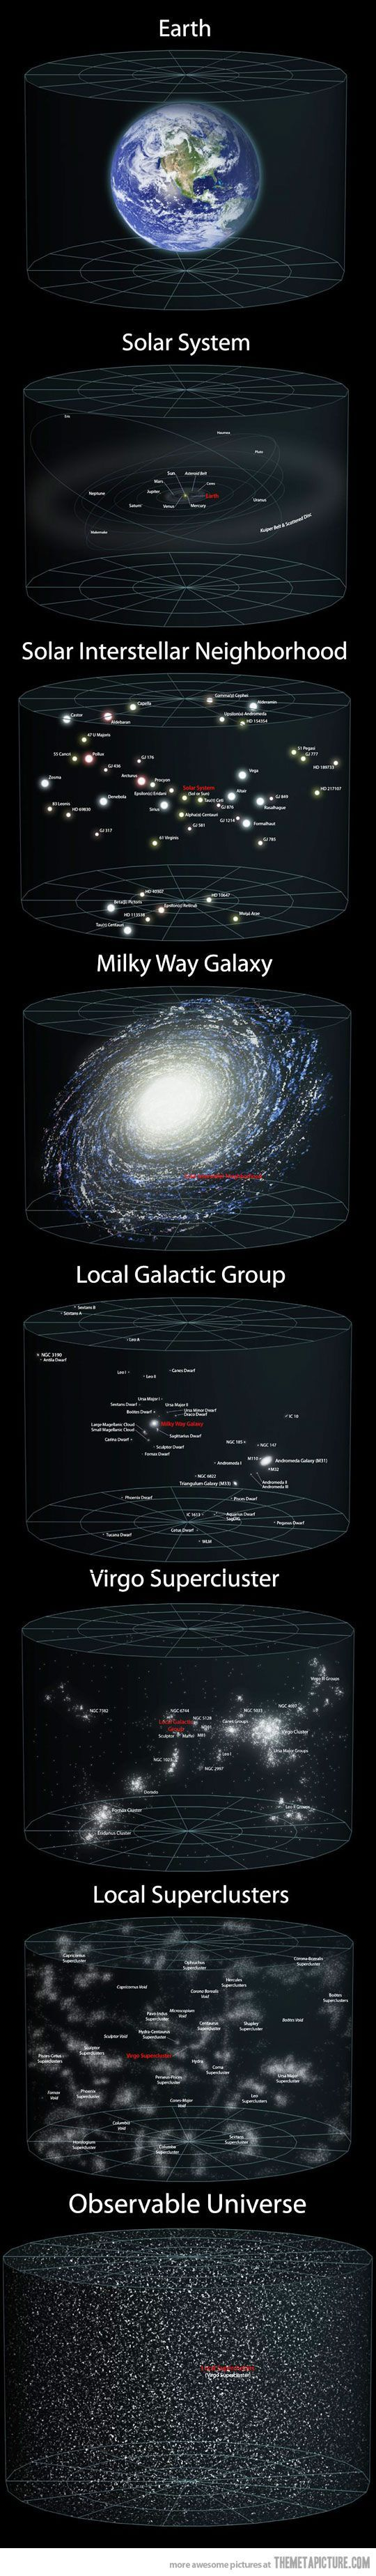 Outer space exploration our planet and galactic address